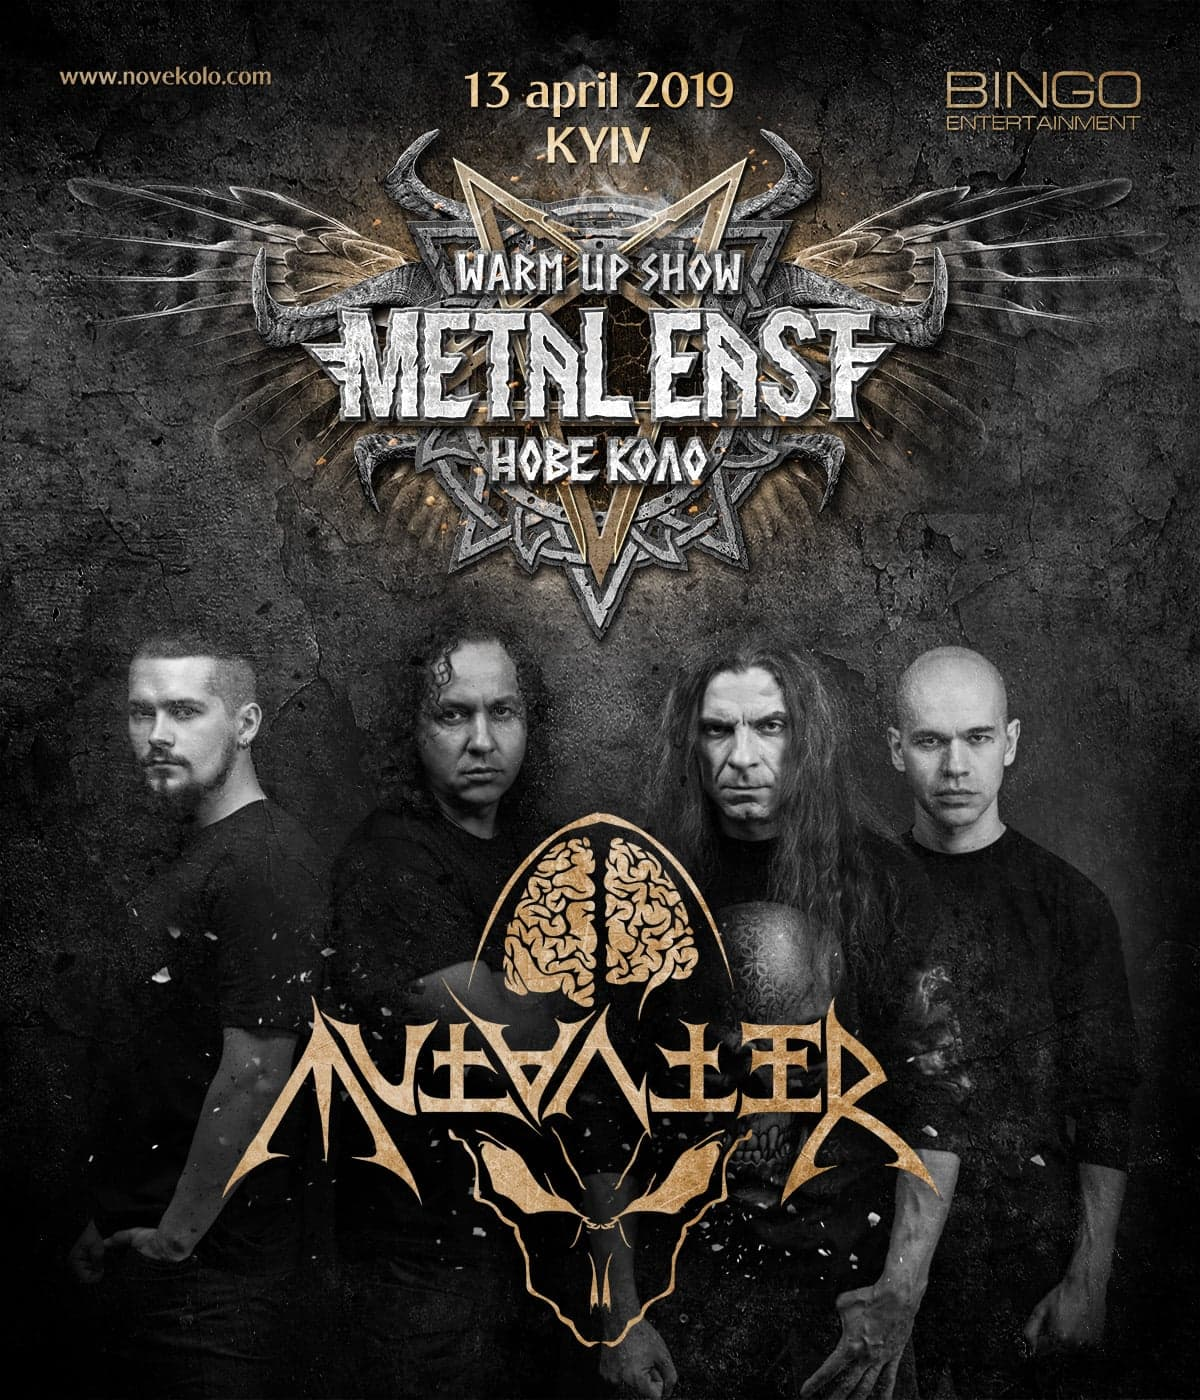 On April 13th of 2019 MUTANTER will play for you at the stage of Metal East Nove Kolo warm-up party in Bingo club, Kyiv